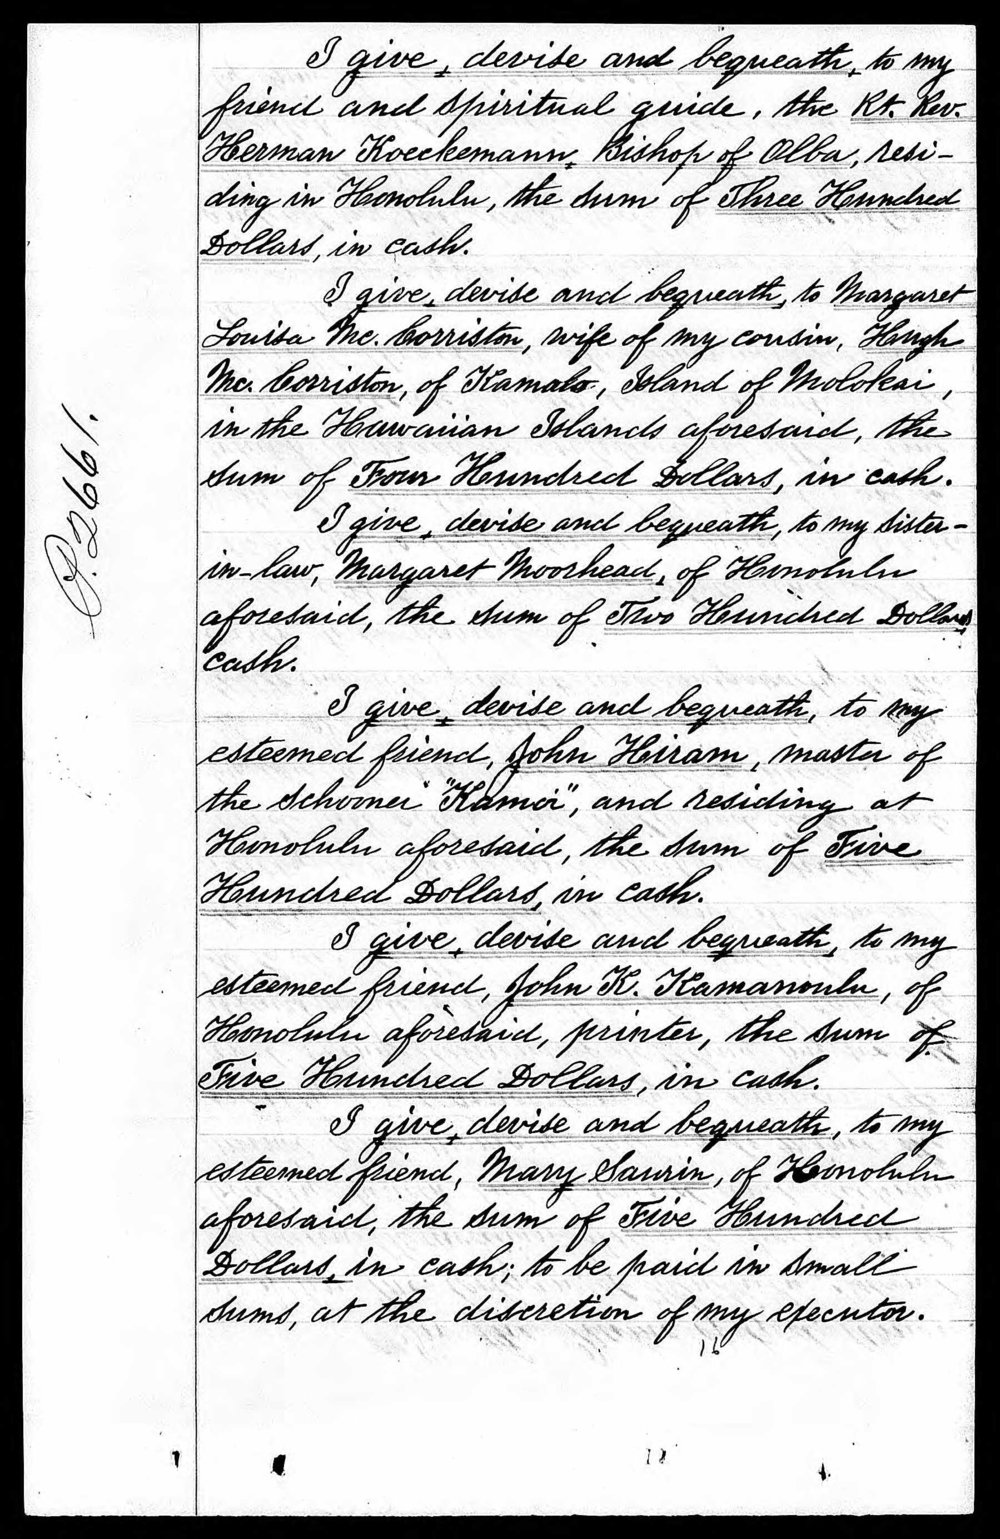 The Last Will and Testament of John McColgan, Page 2, 1890